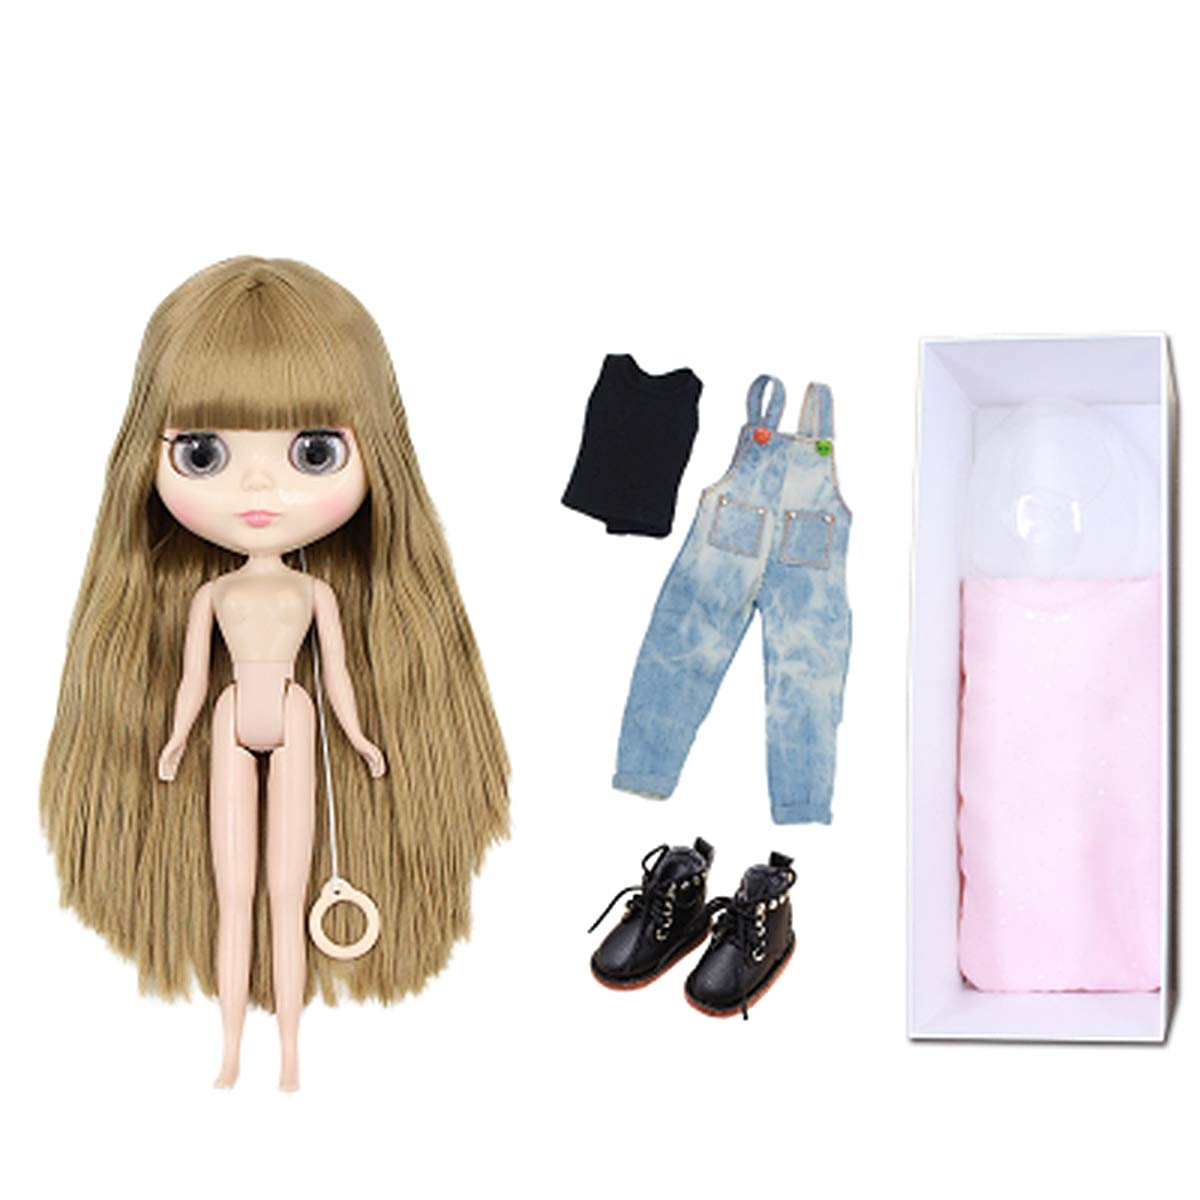 Jeans 19joints Aegilmc BJD Dolls Blythe Puppet, mode 1 6 SD 30Cm Ball Jointed Body Dolls, Blond Replaceable Big Eyes Hand Reborn Toy Surprise DIY Gift Make Up,TshirtRobe,19joints